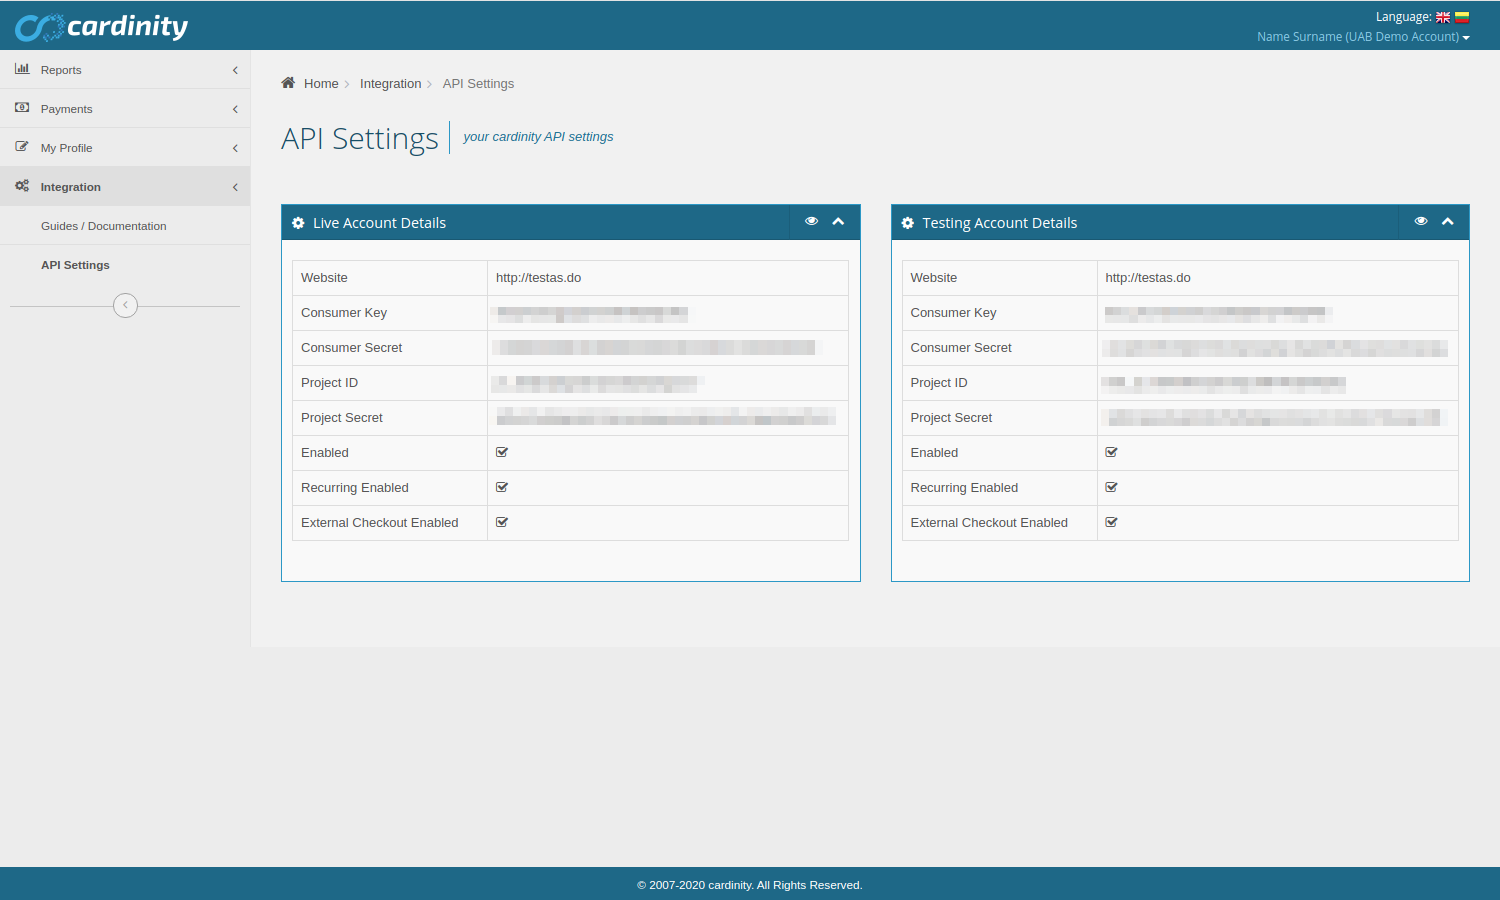 Cardinity integration settings